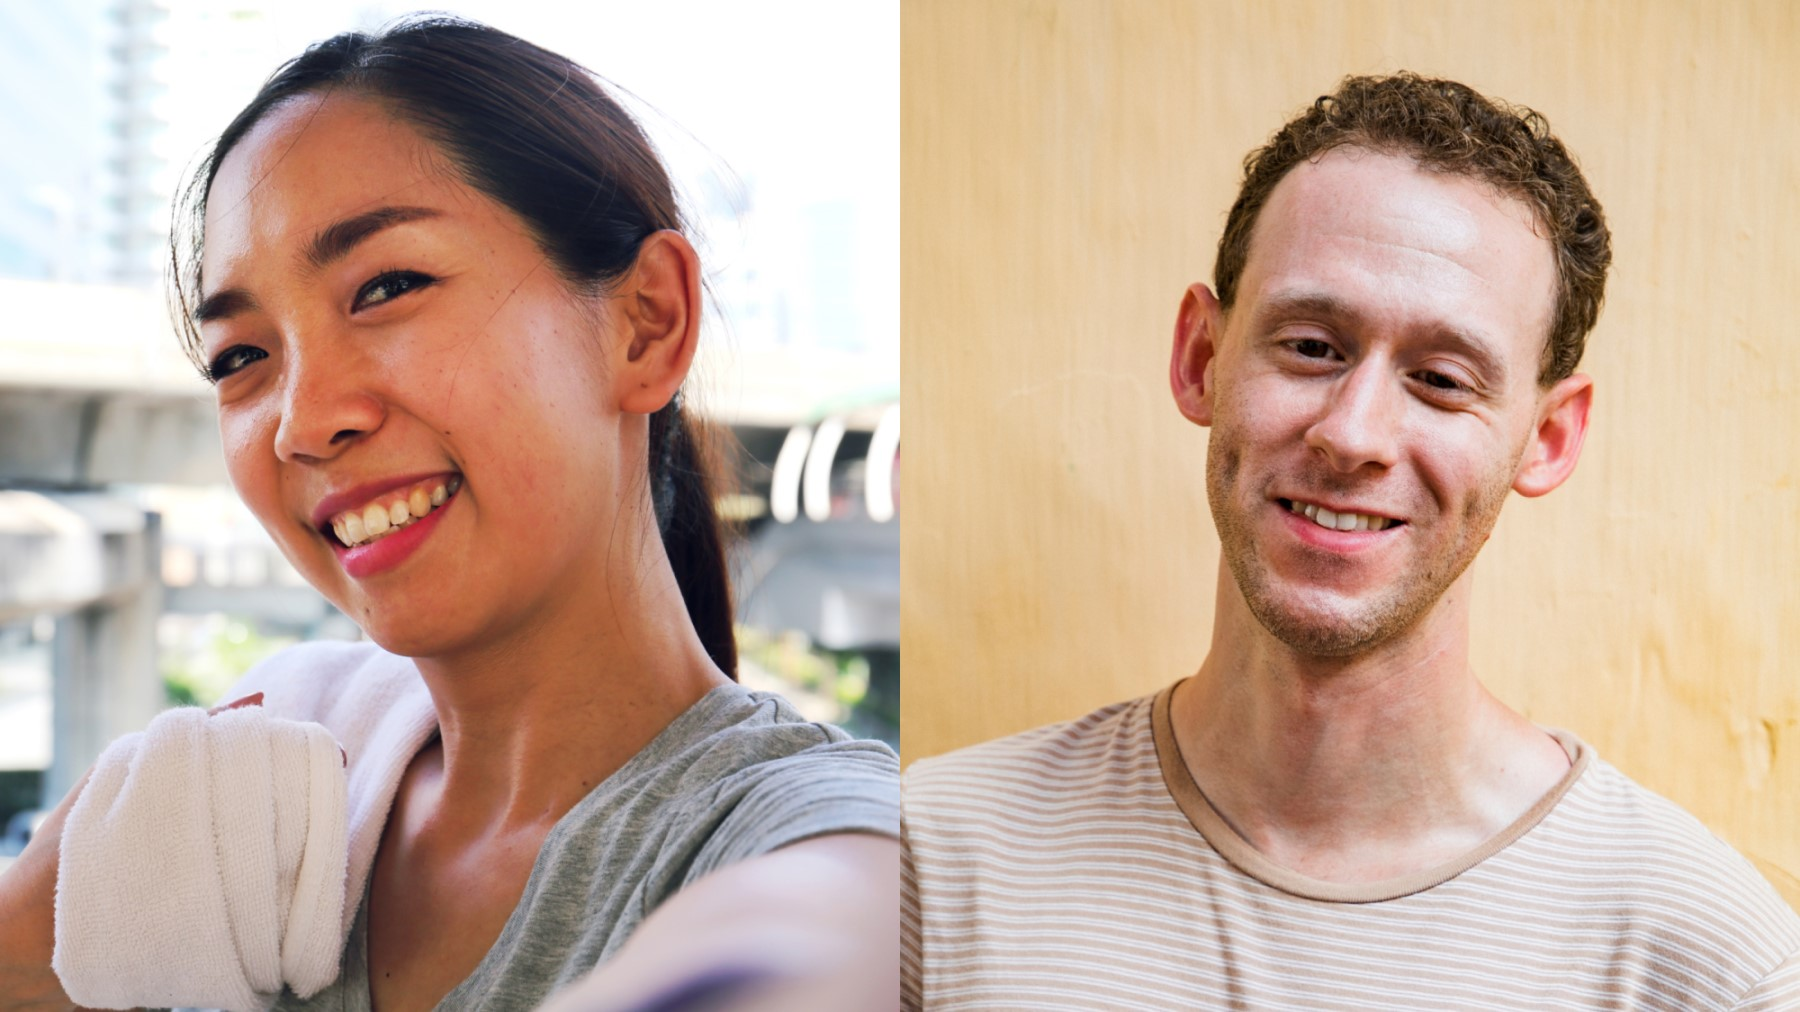 Photos of a young Asian woman and a young white man who has a visual impairment